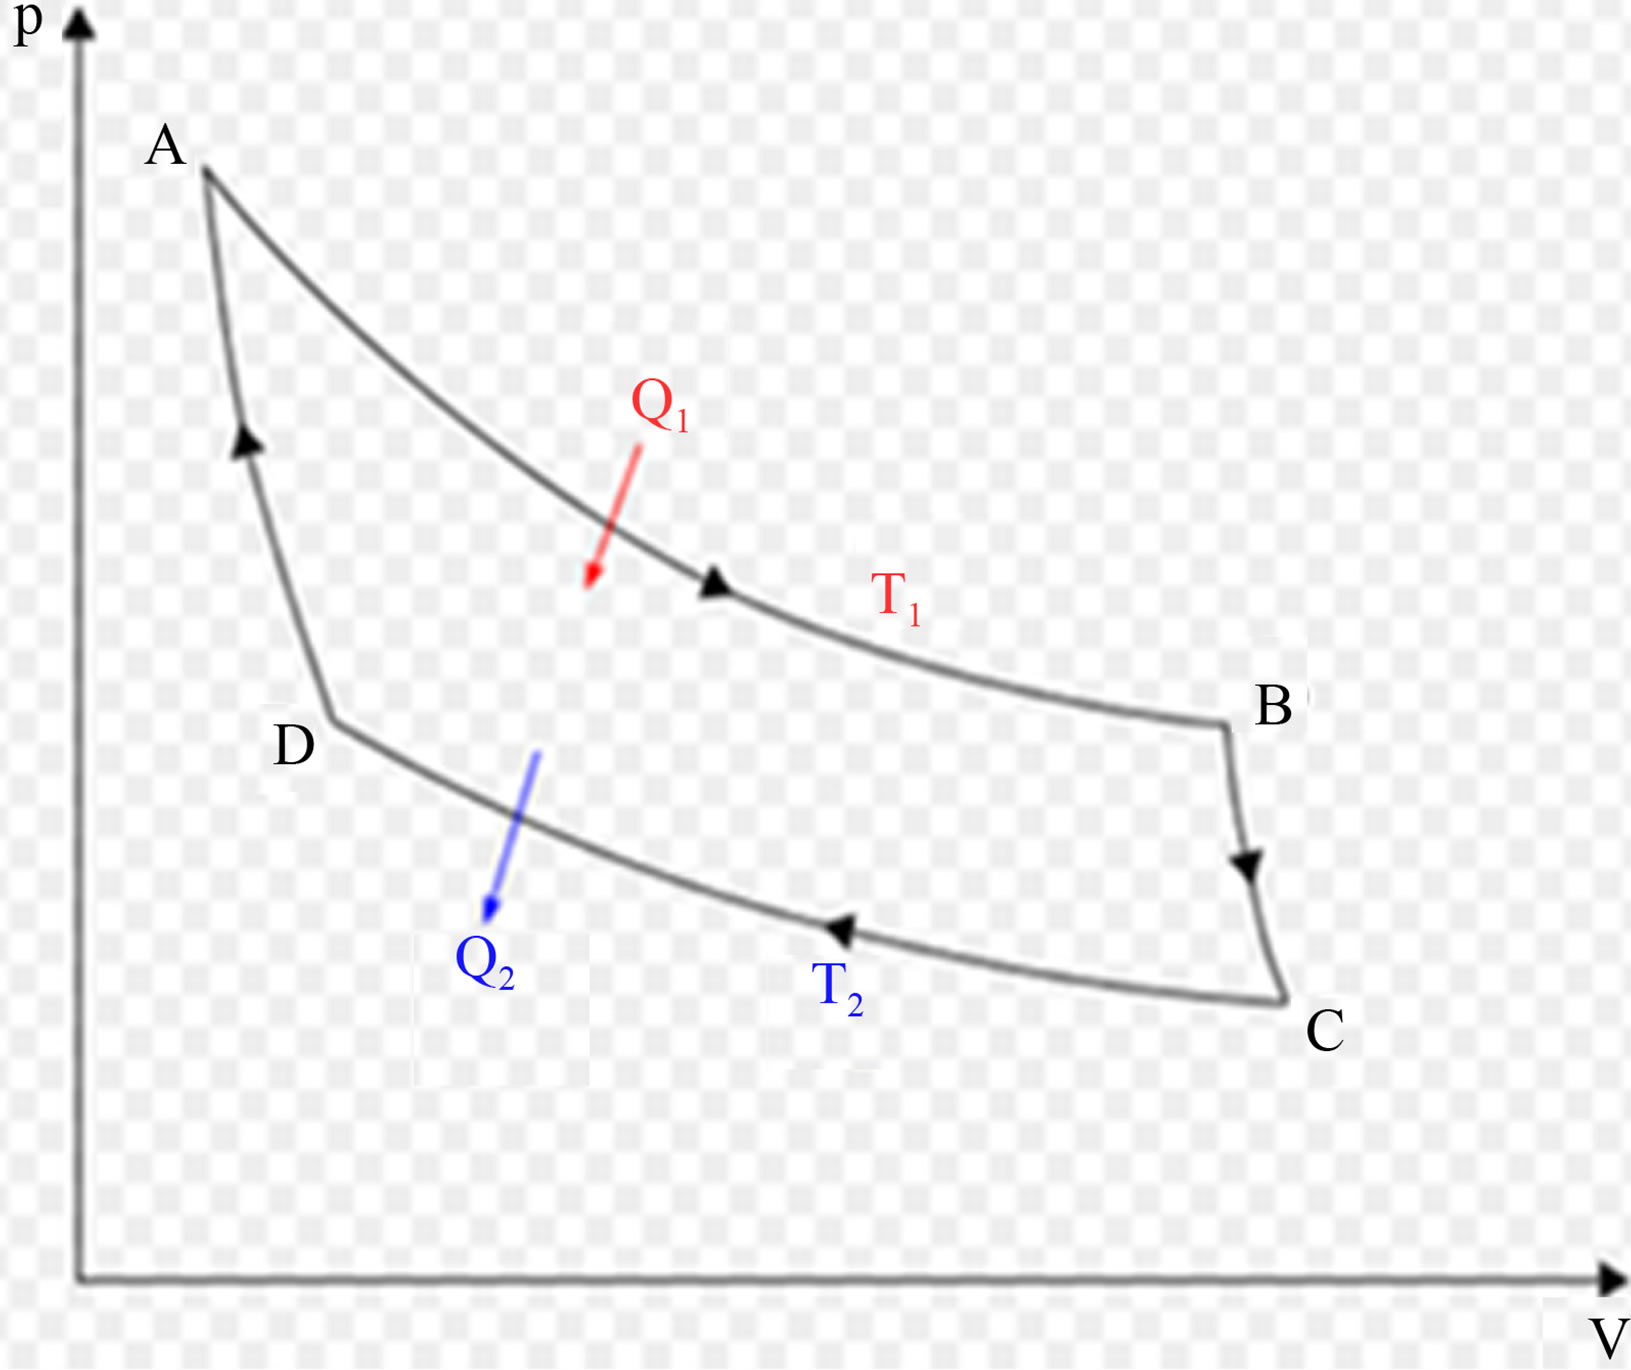 Application of clausius clappeyron relation 1832 and carnot carnot cycle in pv diagram a b isothermal expansion b c adiabatic expansion c d isothermal compression d a adiabatic compression ccuart Gallery